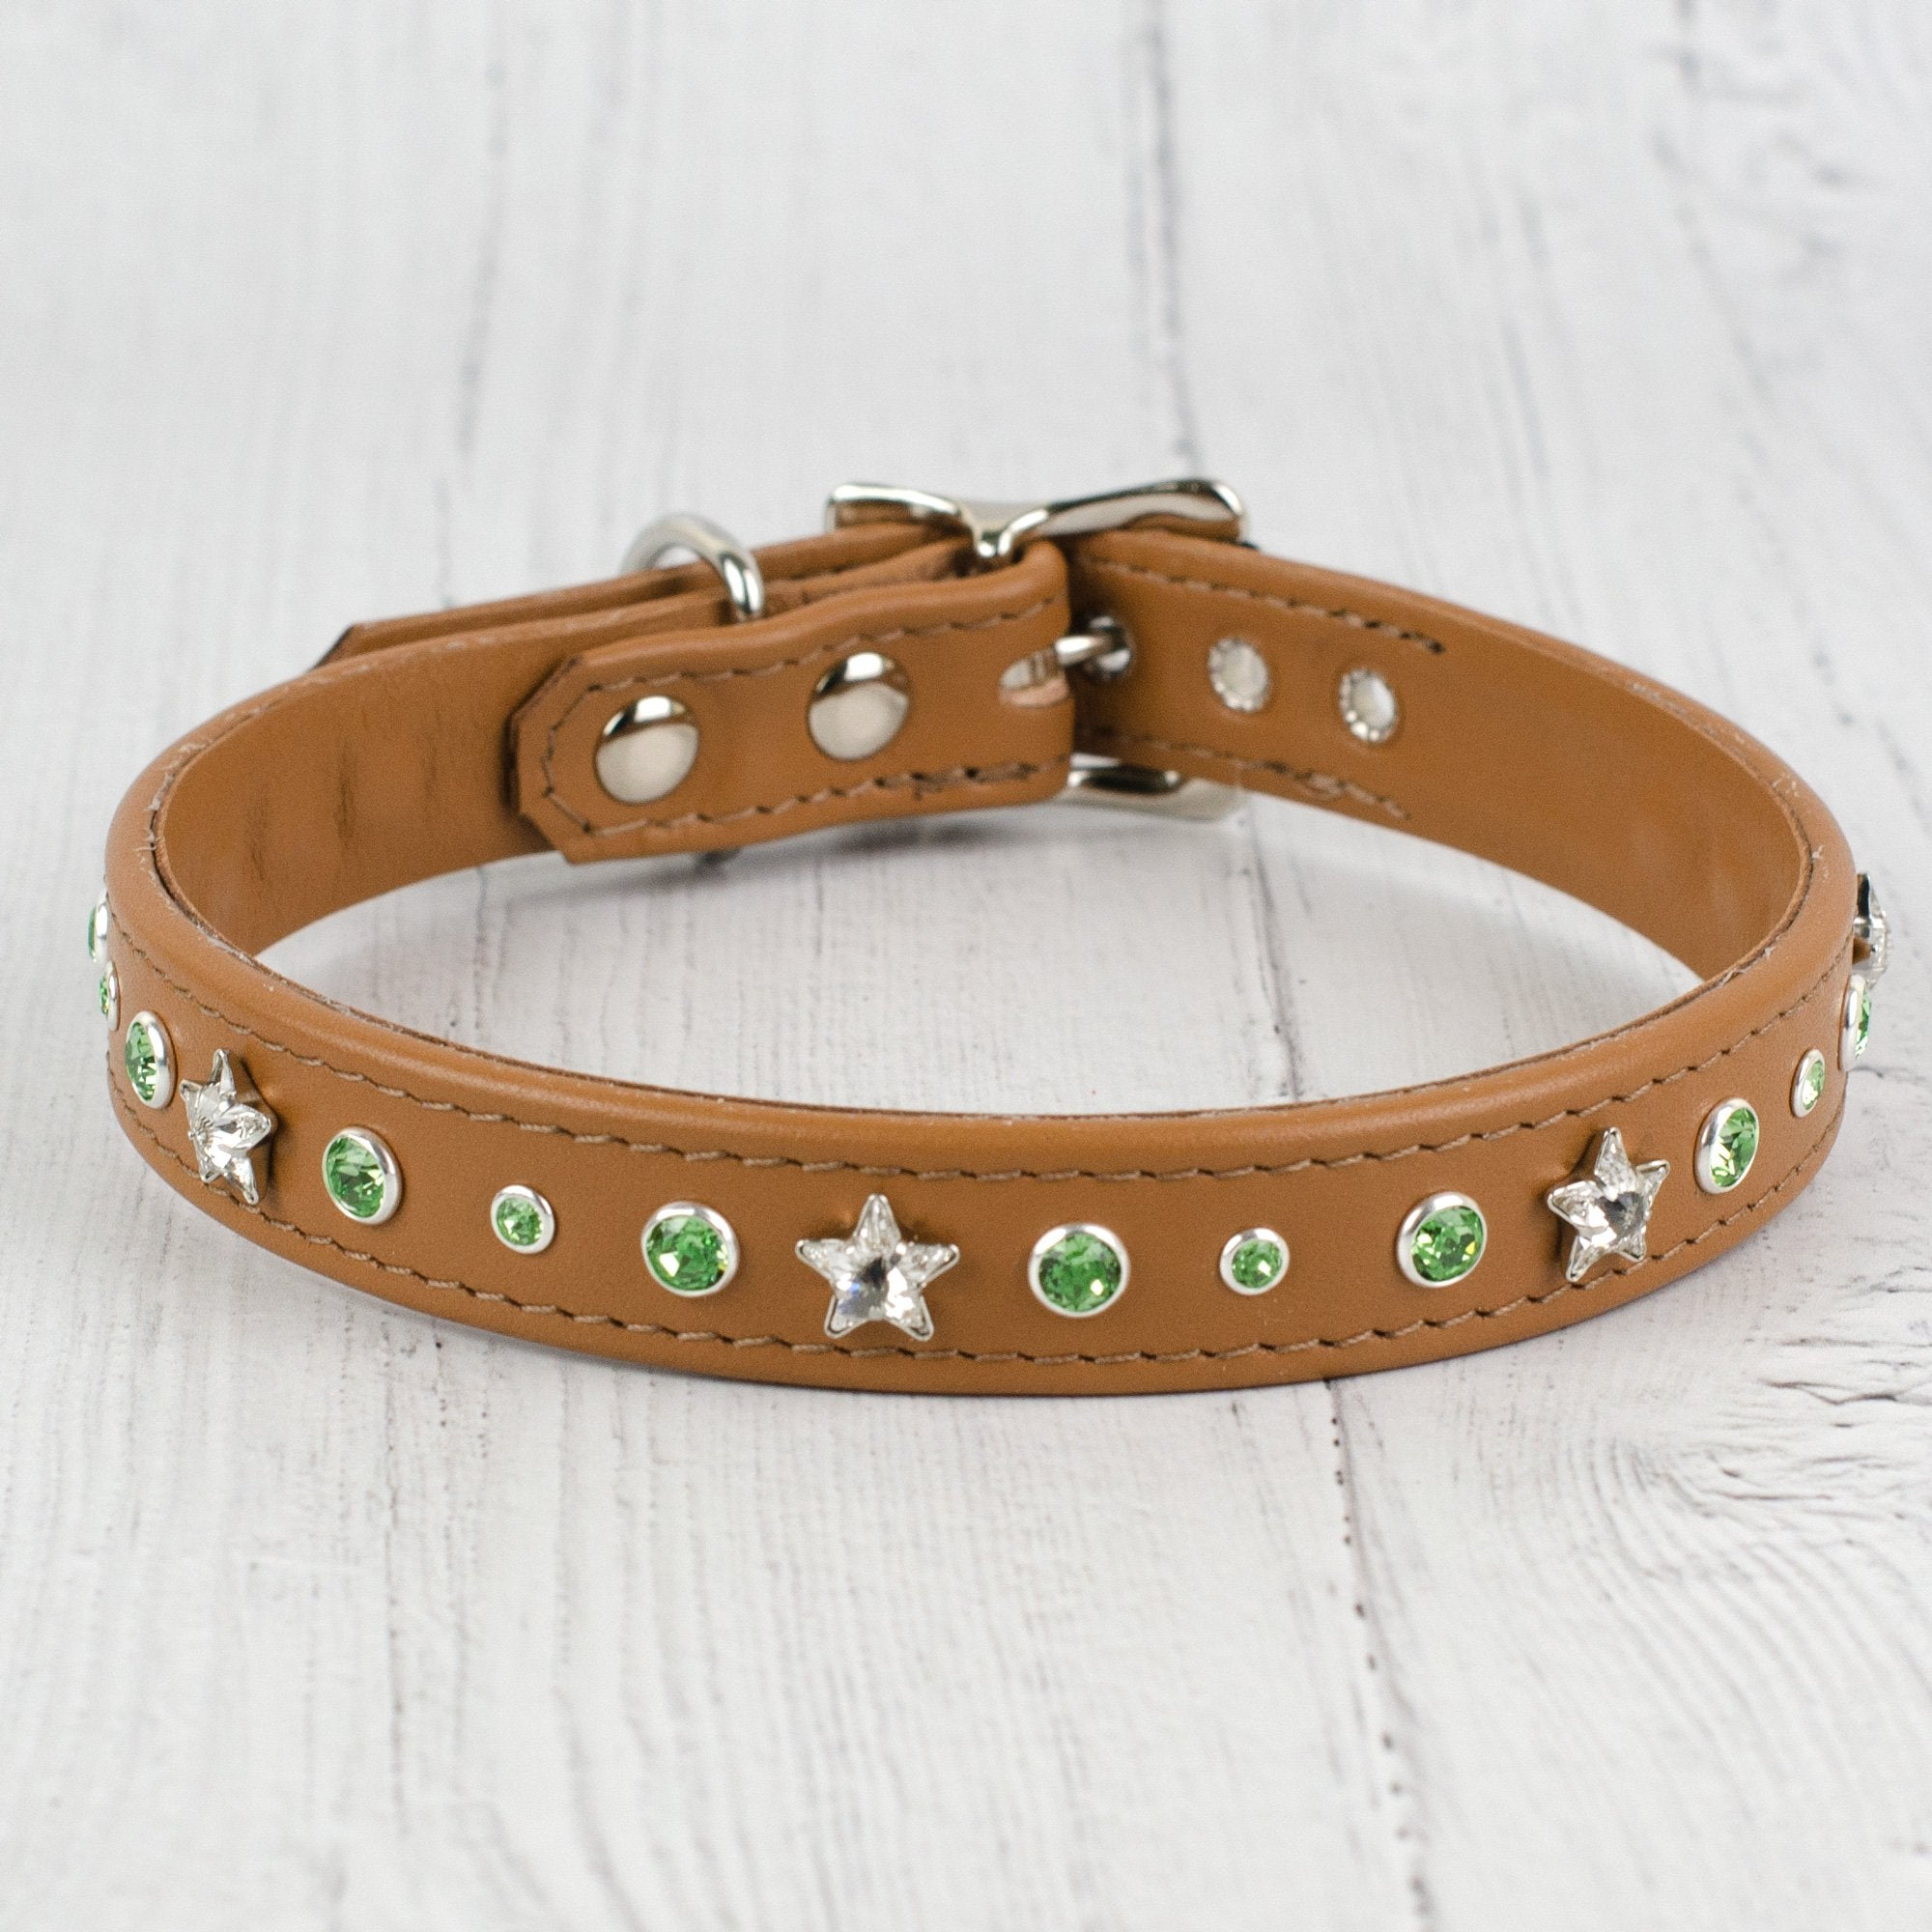 Starburst Crystal Leather Dog Collar